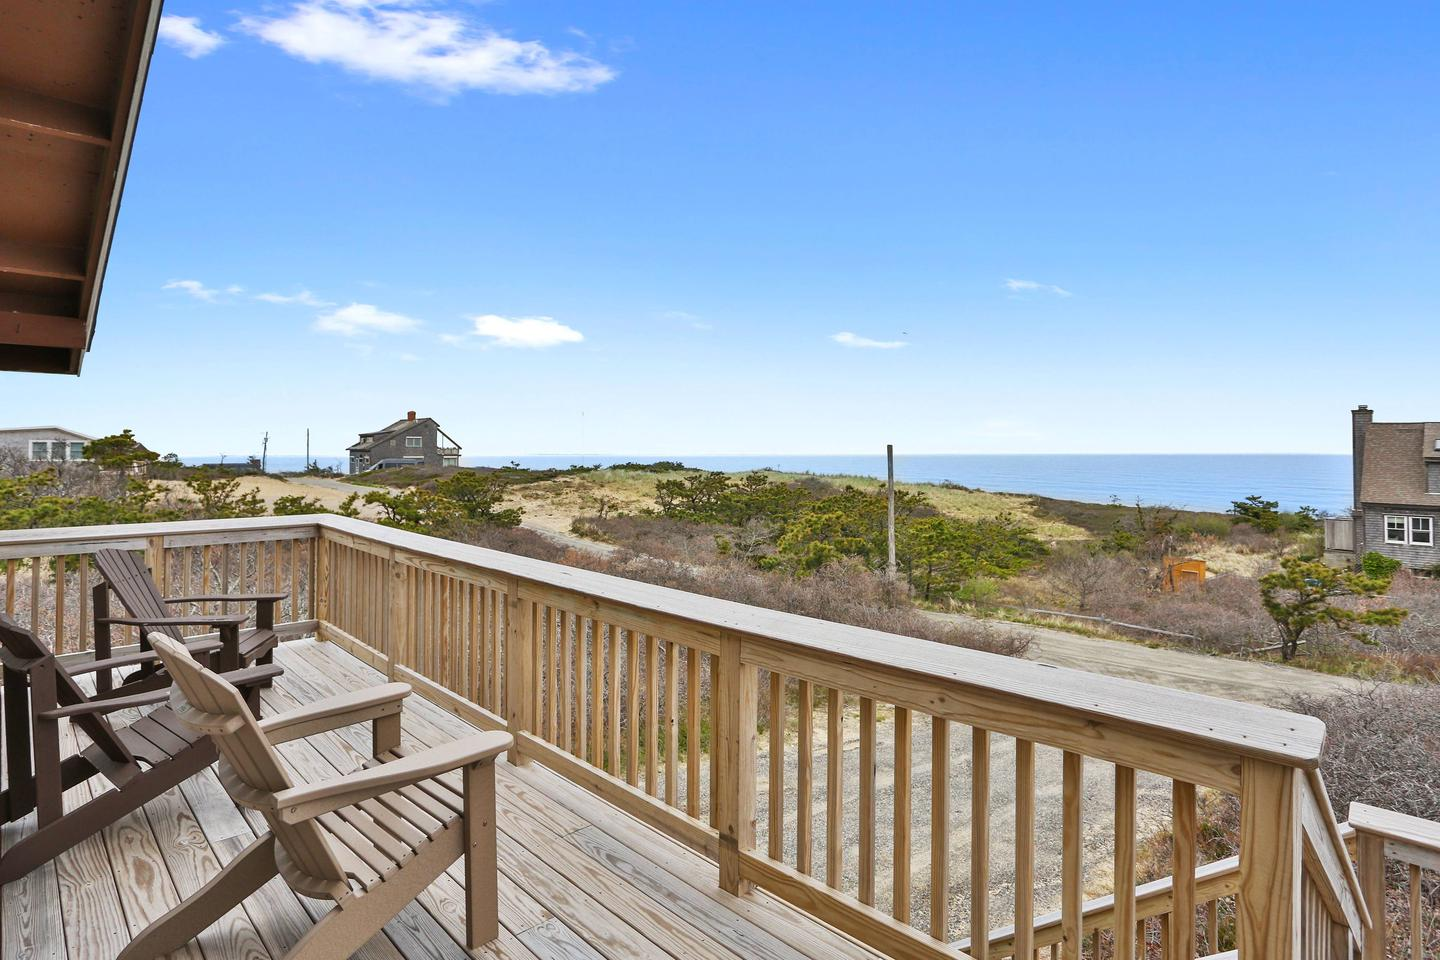 Take in the sunrise and salt air from the deck